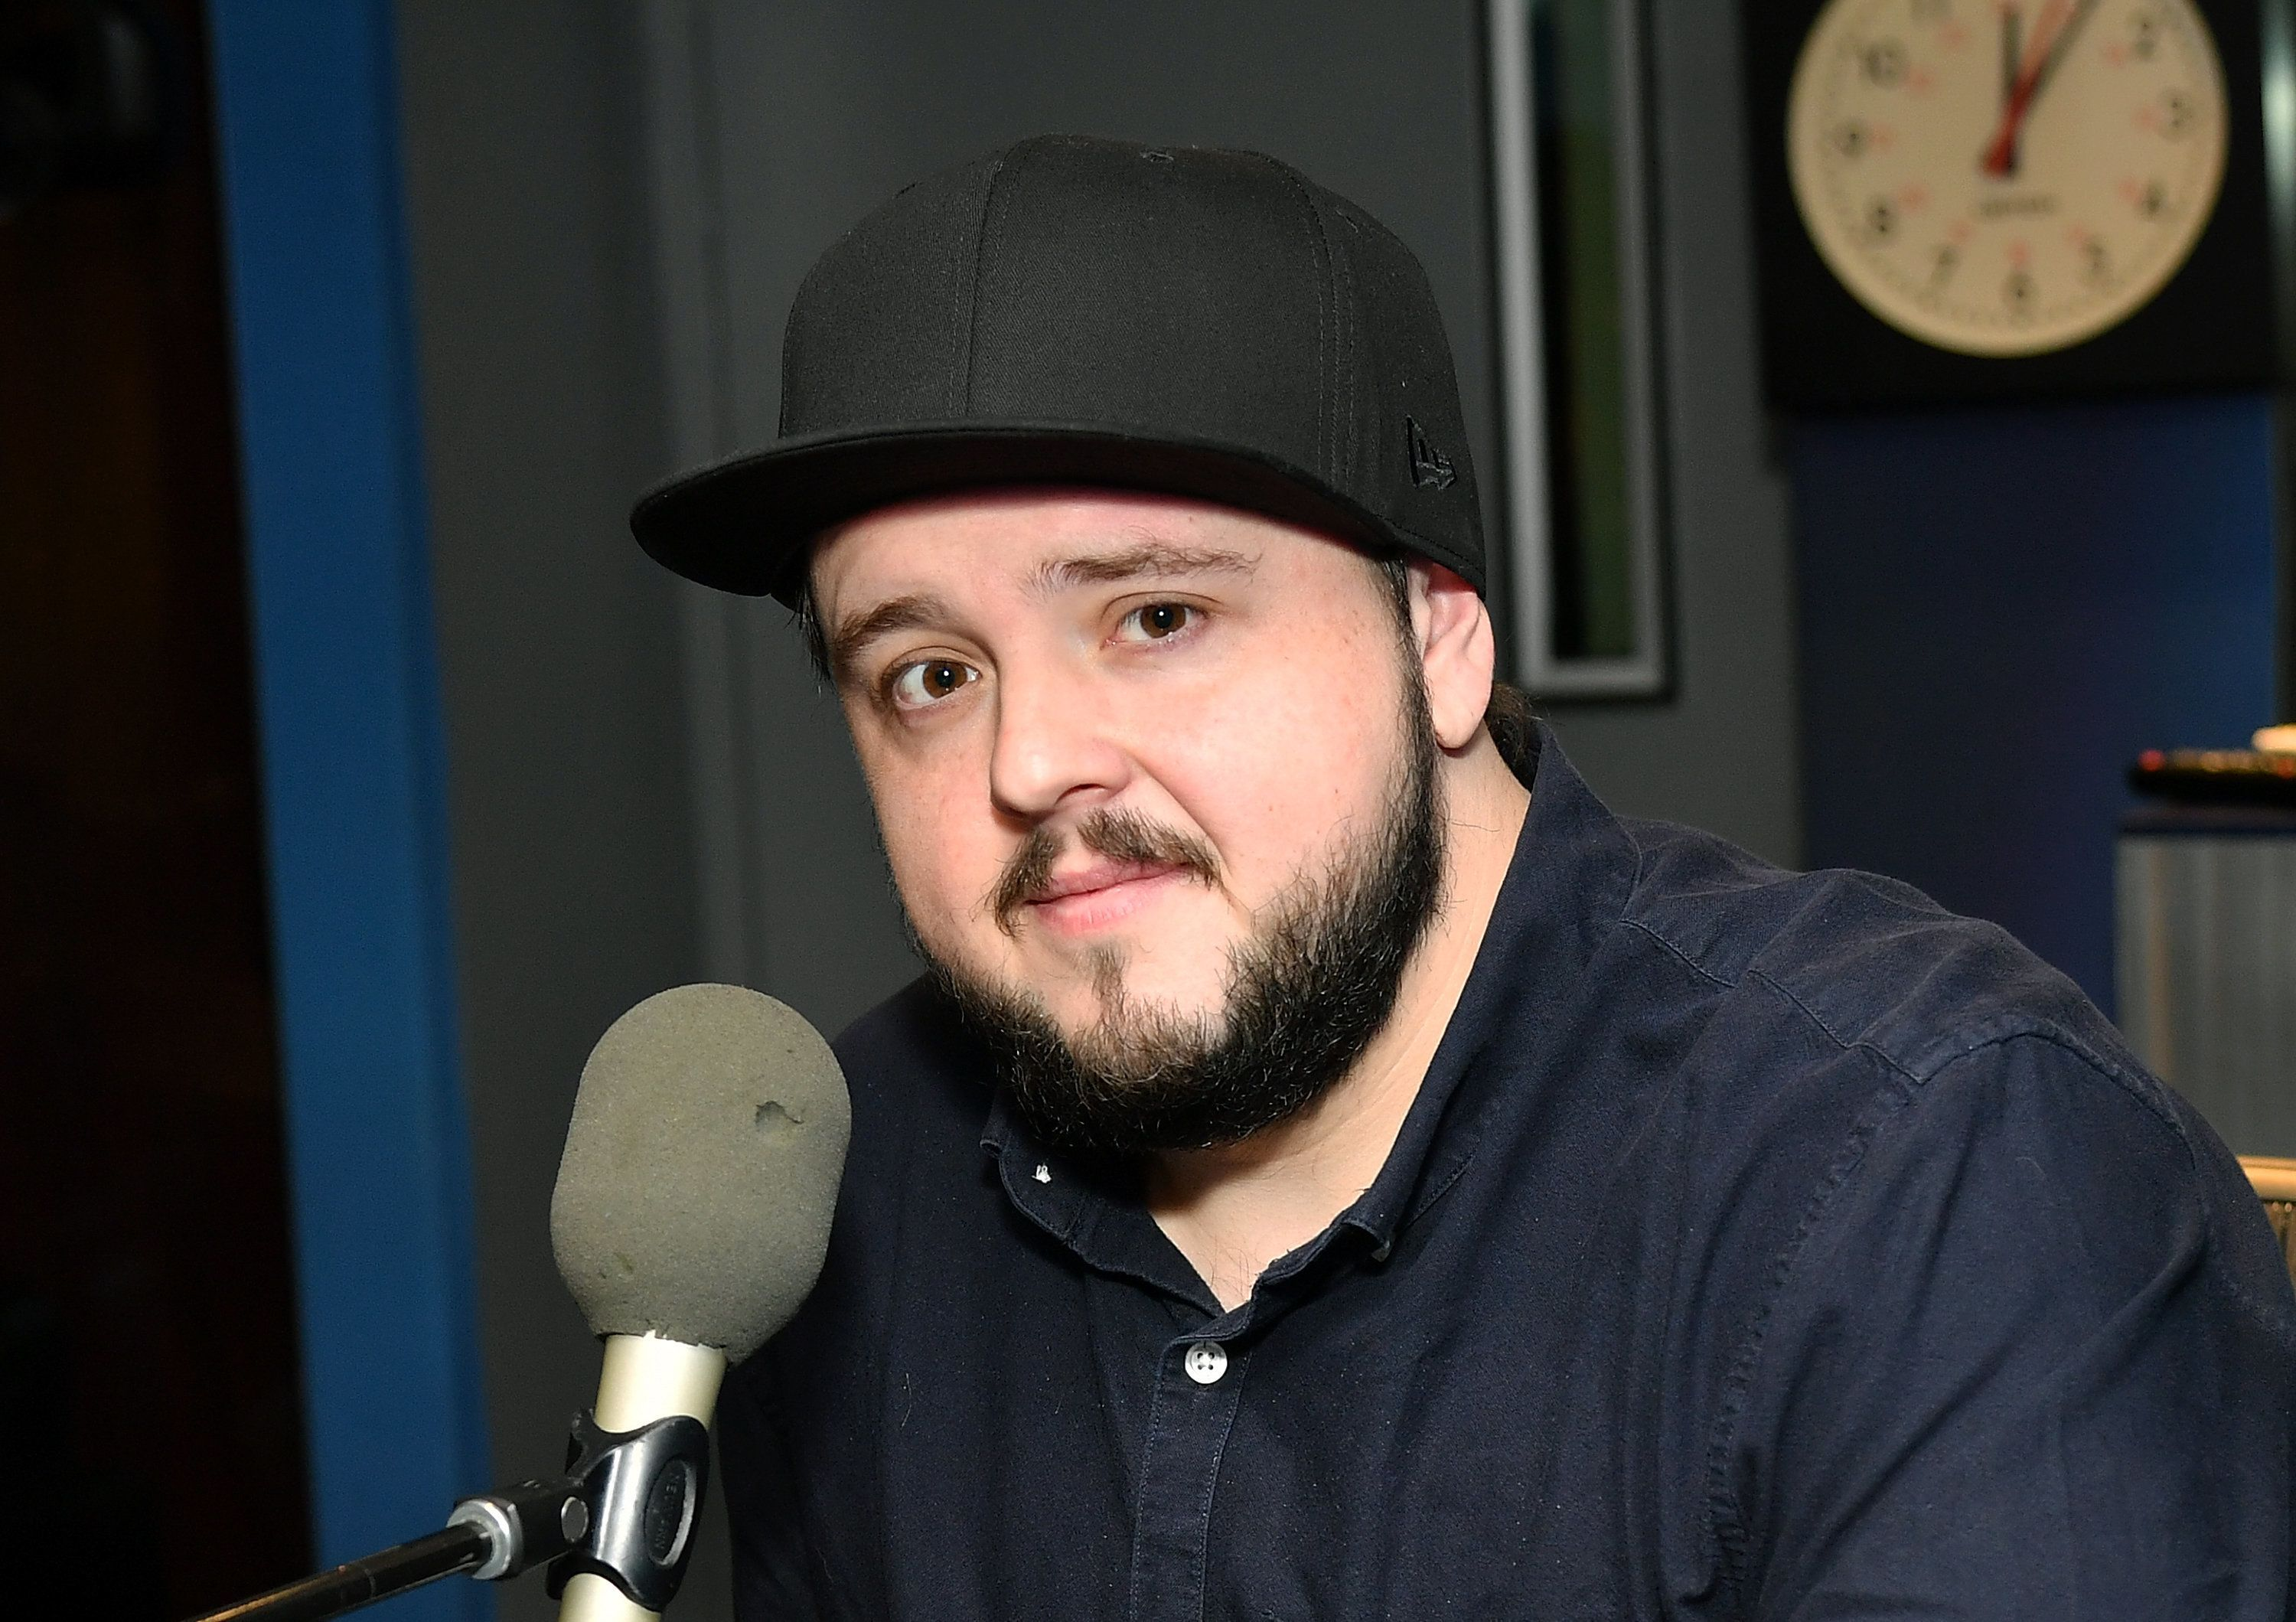 NEW YORK, NY - APRIL 05:  (EXCLUSIVE COVERAGE) Actor John Bradley visits Larry Fink at SiriusXM Studios on April 5, 2019 in New York City.  (Photo by Slaven Vlasic/Getty Images)